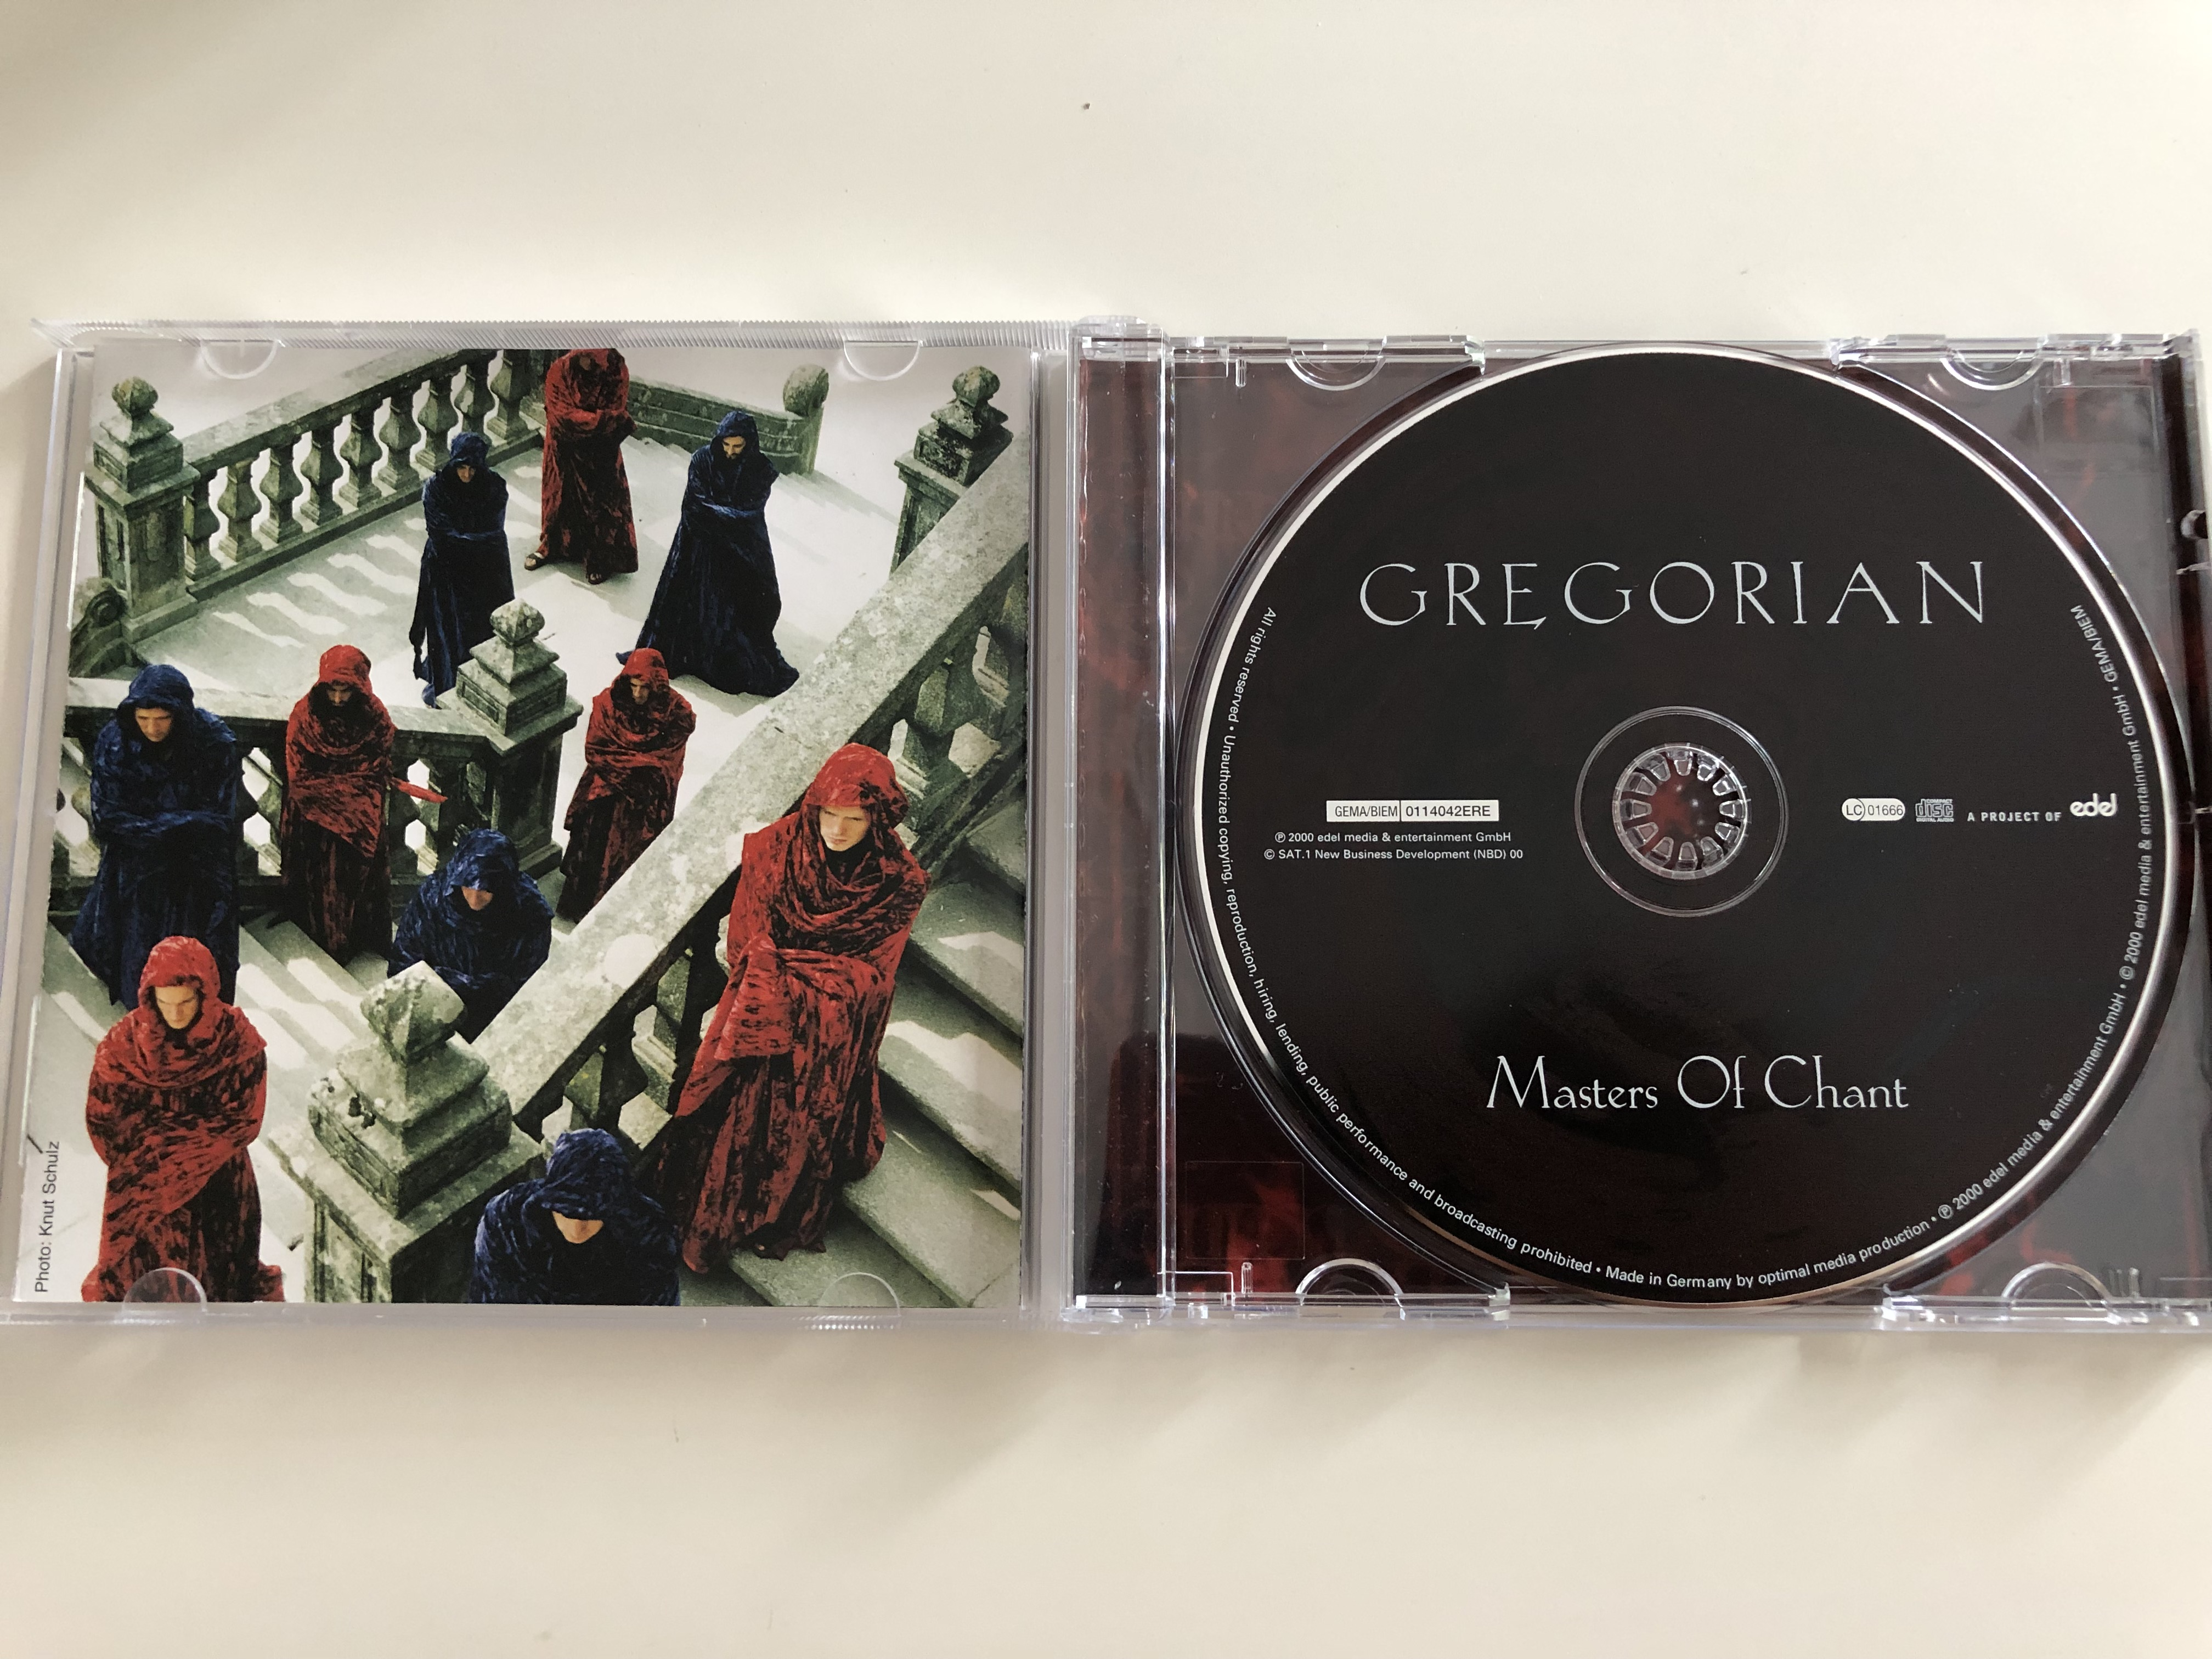 gregorian-masters-of-chant-brothers-in-arms-still-i-m-sad-vienna-don-t-give-up-audio-cd-2000-edel-gregorian-versions-of-popular-songs-5-.jpg